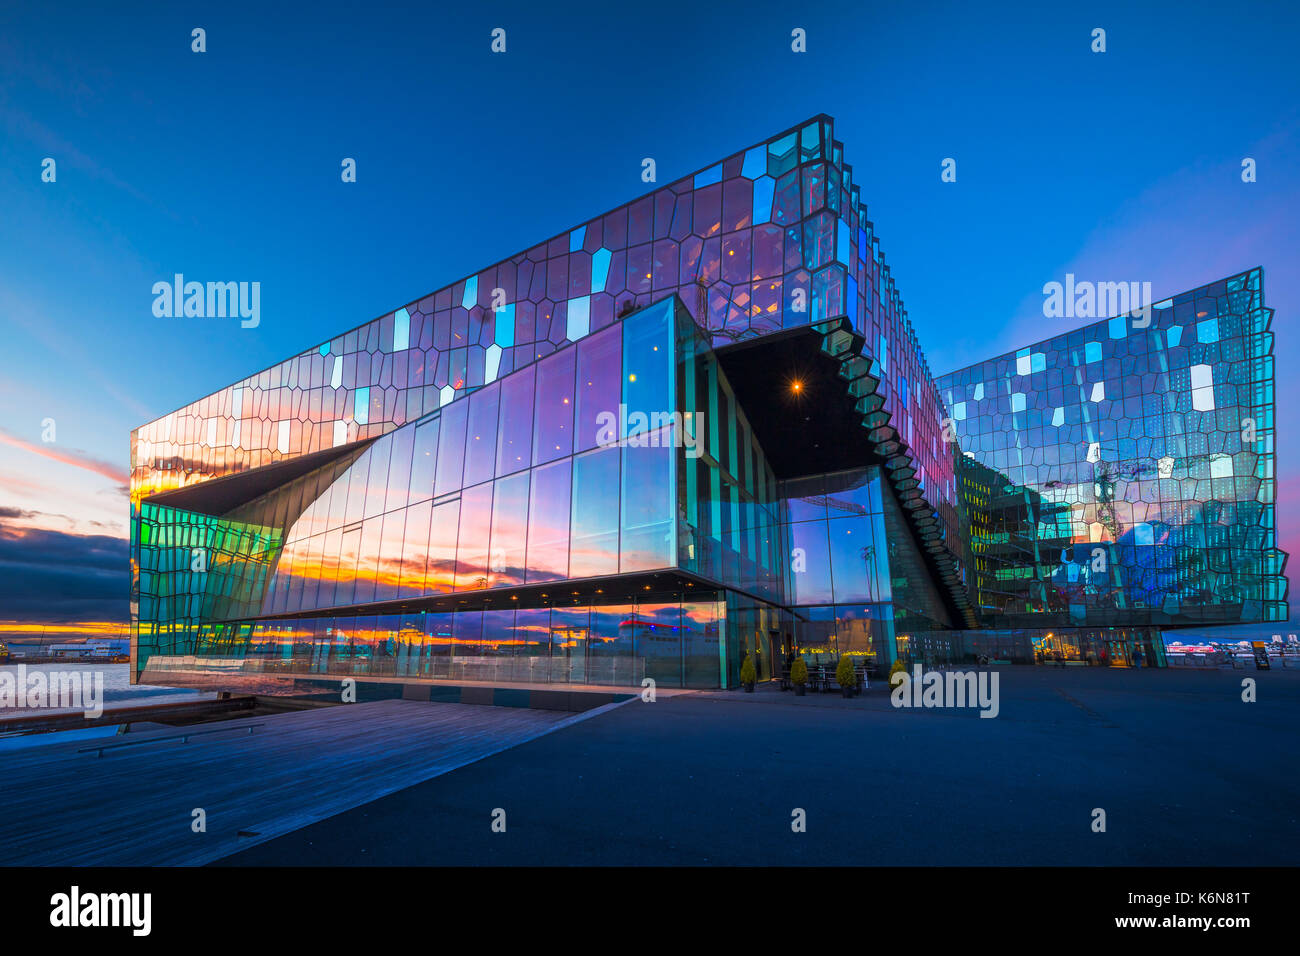 Harpa is a concert hall and conference centre in Reykjavík, Iceland. The opening concert was held on May 4, 2011. The building features a distinctive  - Stock Image